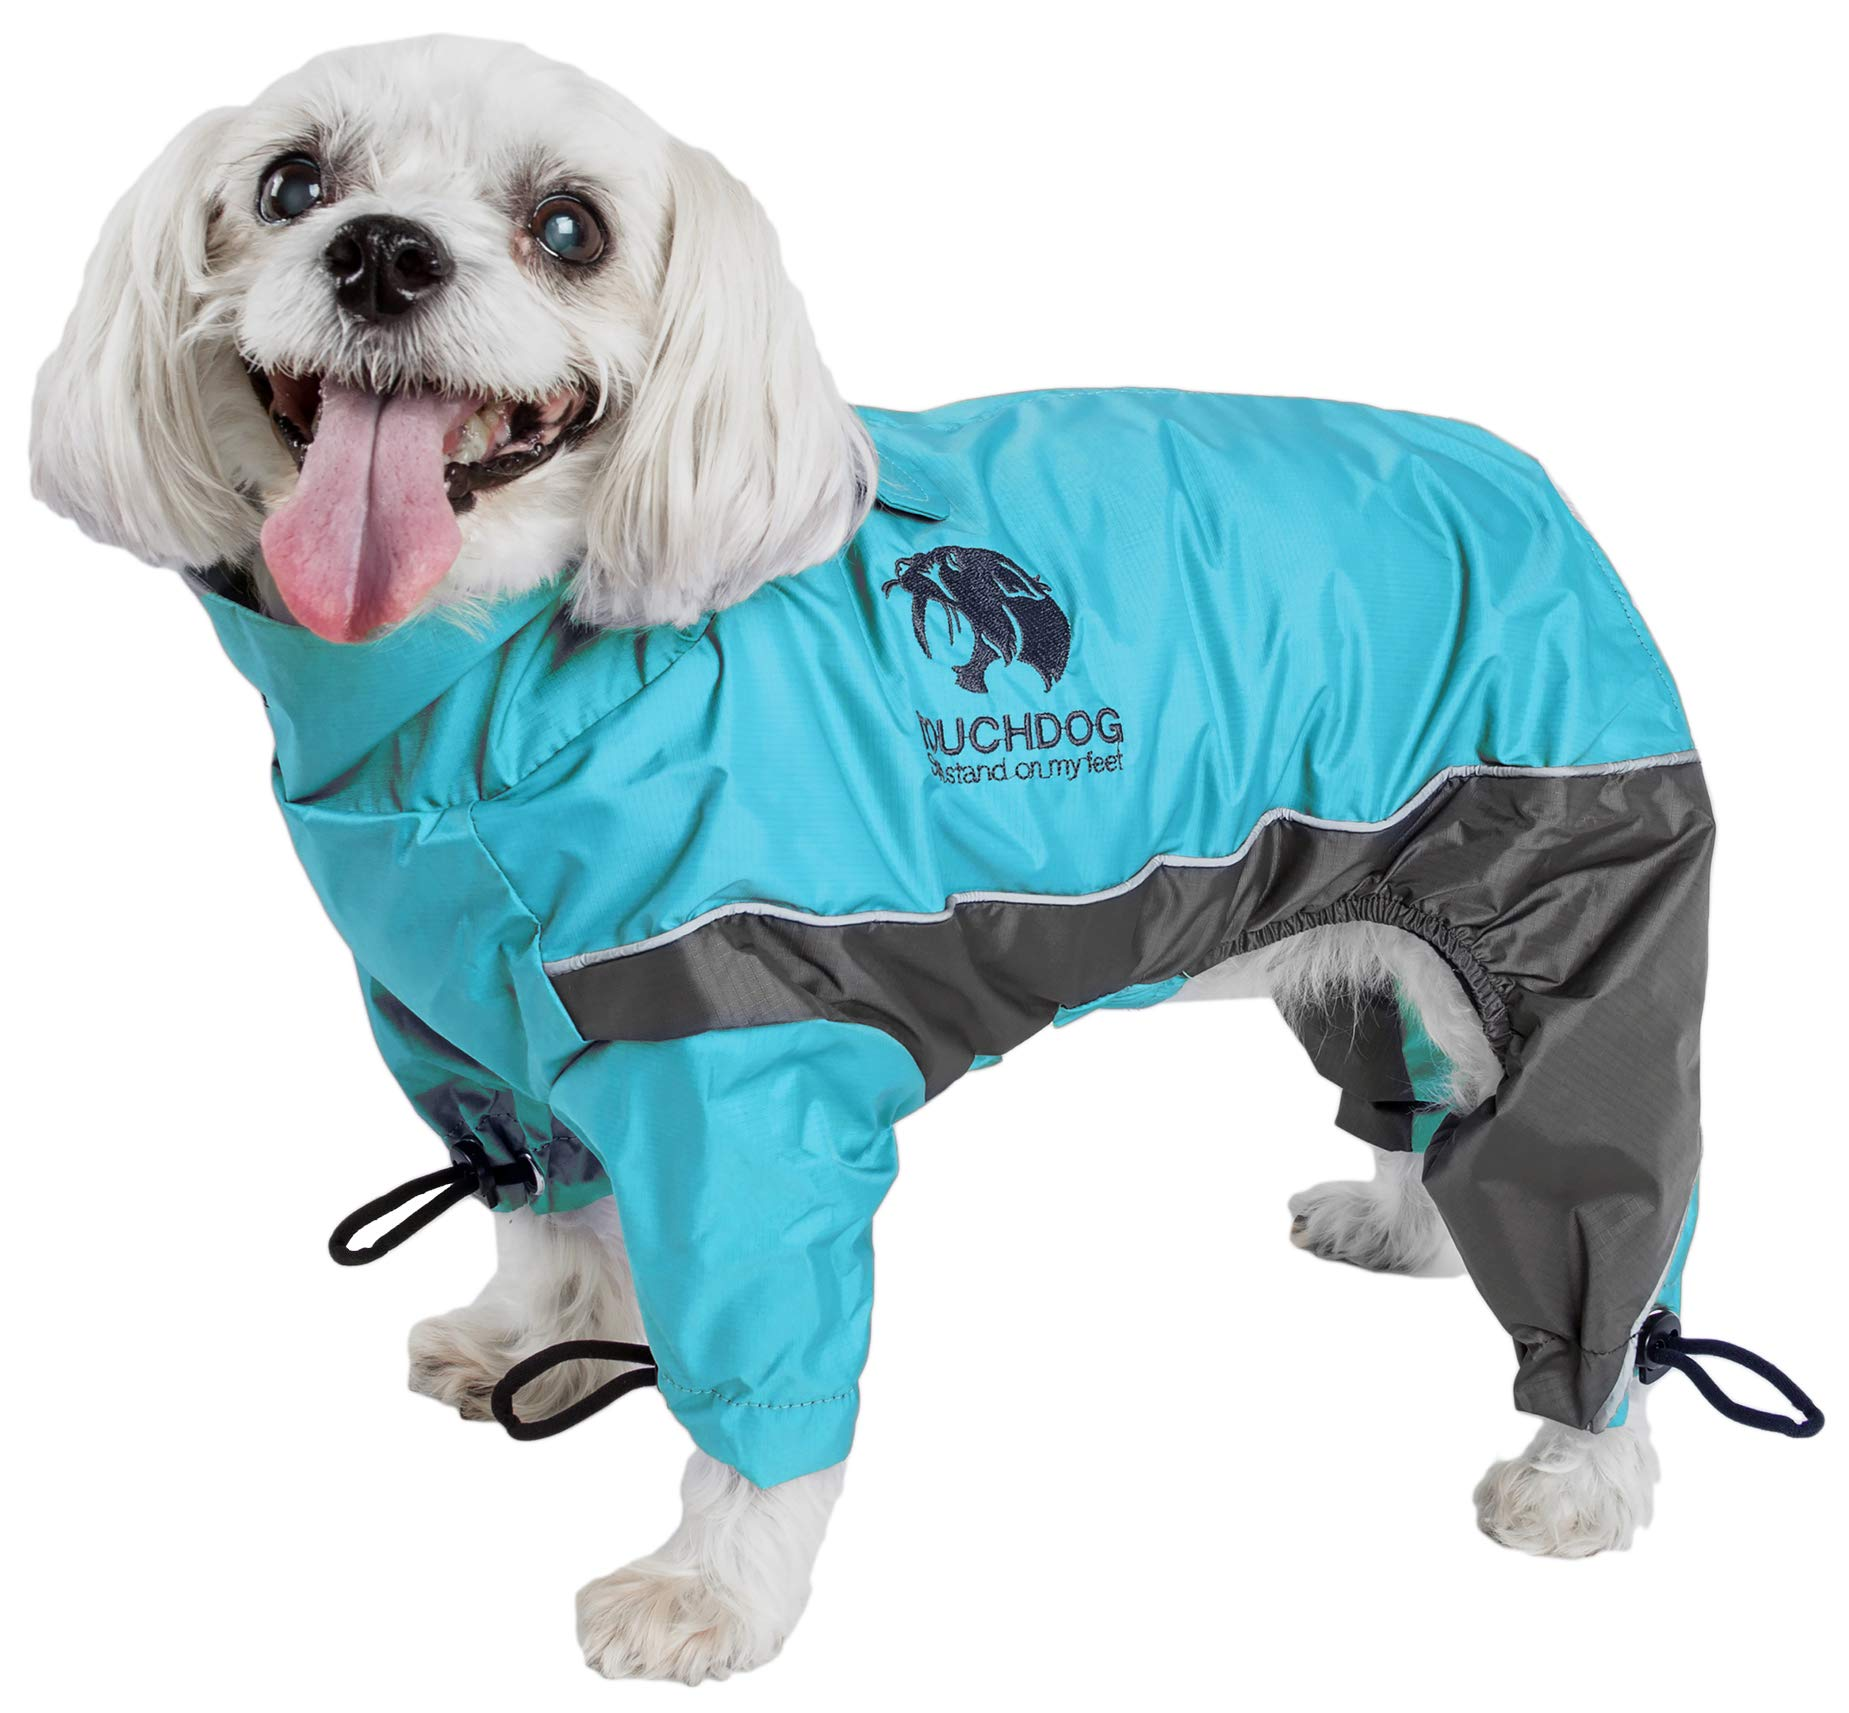 TOUCHDOG 'Quantum-Ice' Full Body Bodied Adjustable and 3M Reflective Pet Dog Coat Jacket w/ Blackshark Technology, Medium, Ocean Blue, Grey by touchdog